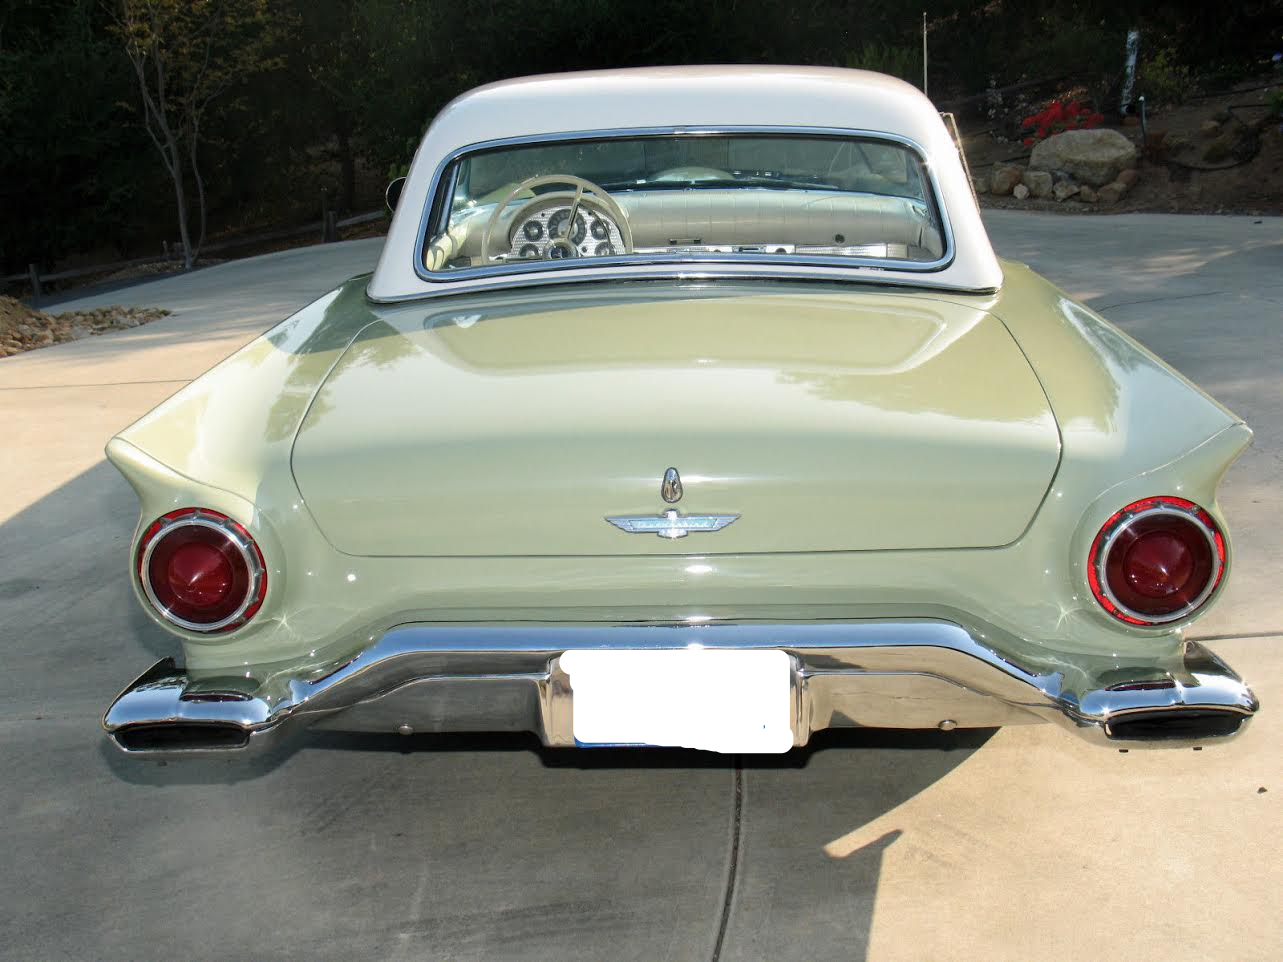 1957 Ford Tbird Convertible with Assy Hardtop For Sale (picture 4 of 6)